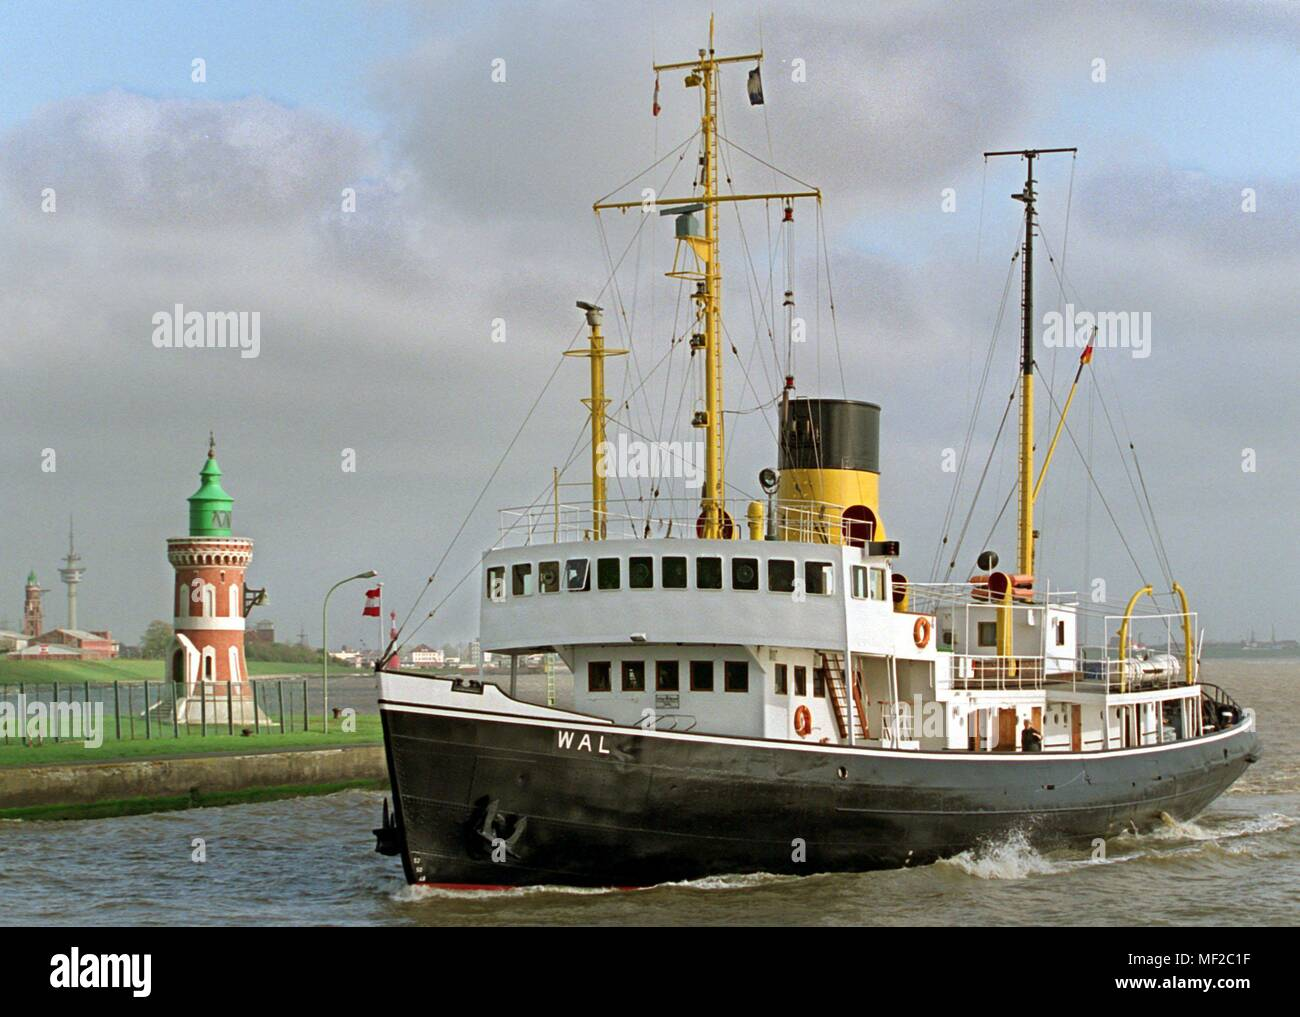 The steam icebreaker 'Wal' happened after a Heligoland trip on 3 May 1998 the bell tower at the Kaiserschleuse in Bremerhaven. The museum ship of a Bremerhaven-based Forderverein, which is powered by a 1,200-hp triple-expansion piston steam engine, turns 60 on May 5, 1998. In 1938 the 'whale' was launched on the Oder Works in Szczecin. Today, he pays to the very few really steam-powered ships and is mainly used for guest trips. | usage worldwide - Stock Image